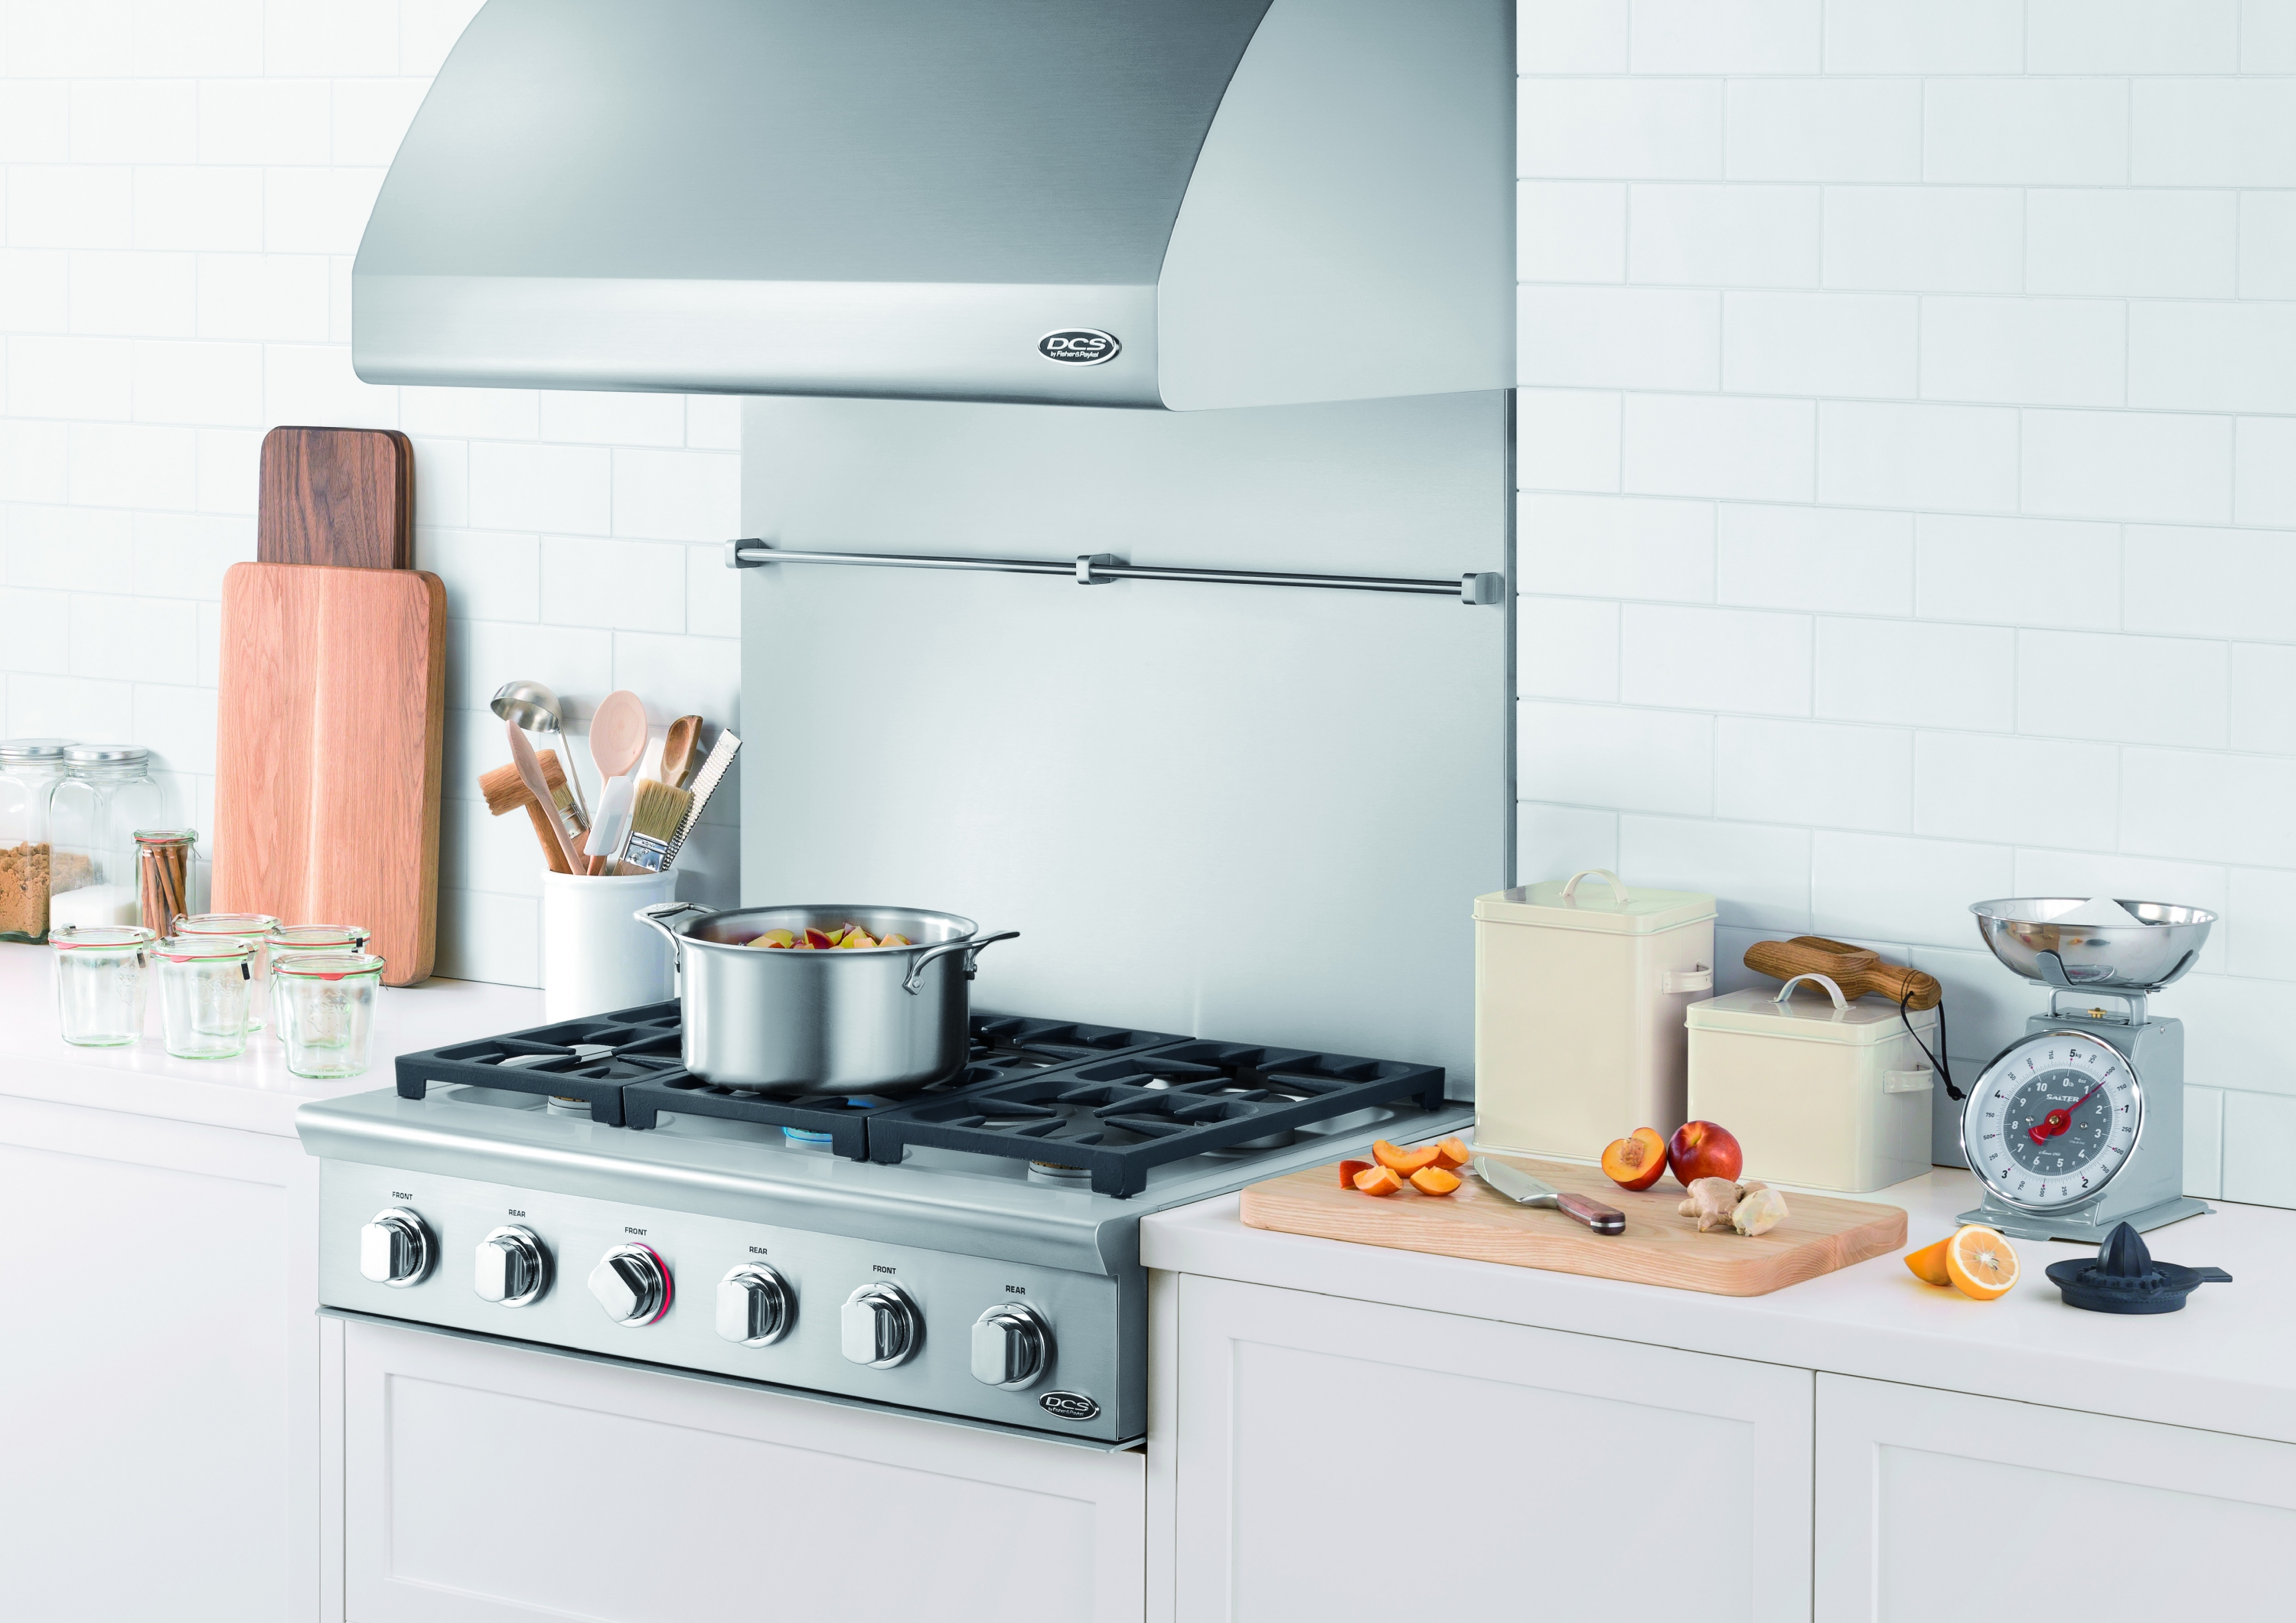 DCS by Fisher & Paykel Launches New Line of Professional Kitchen ...